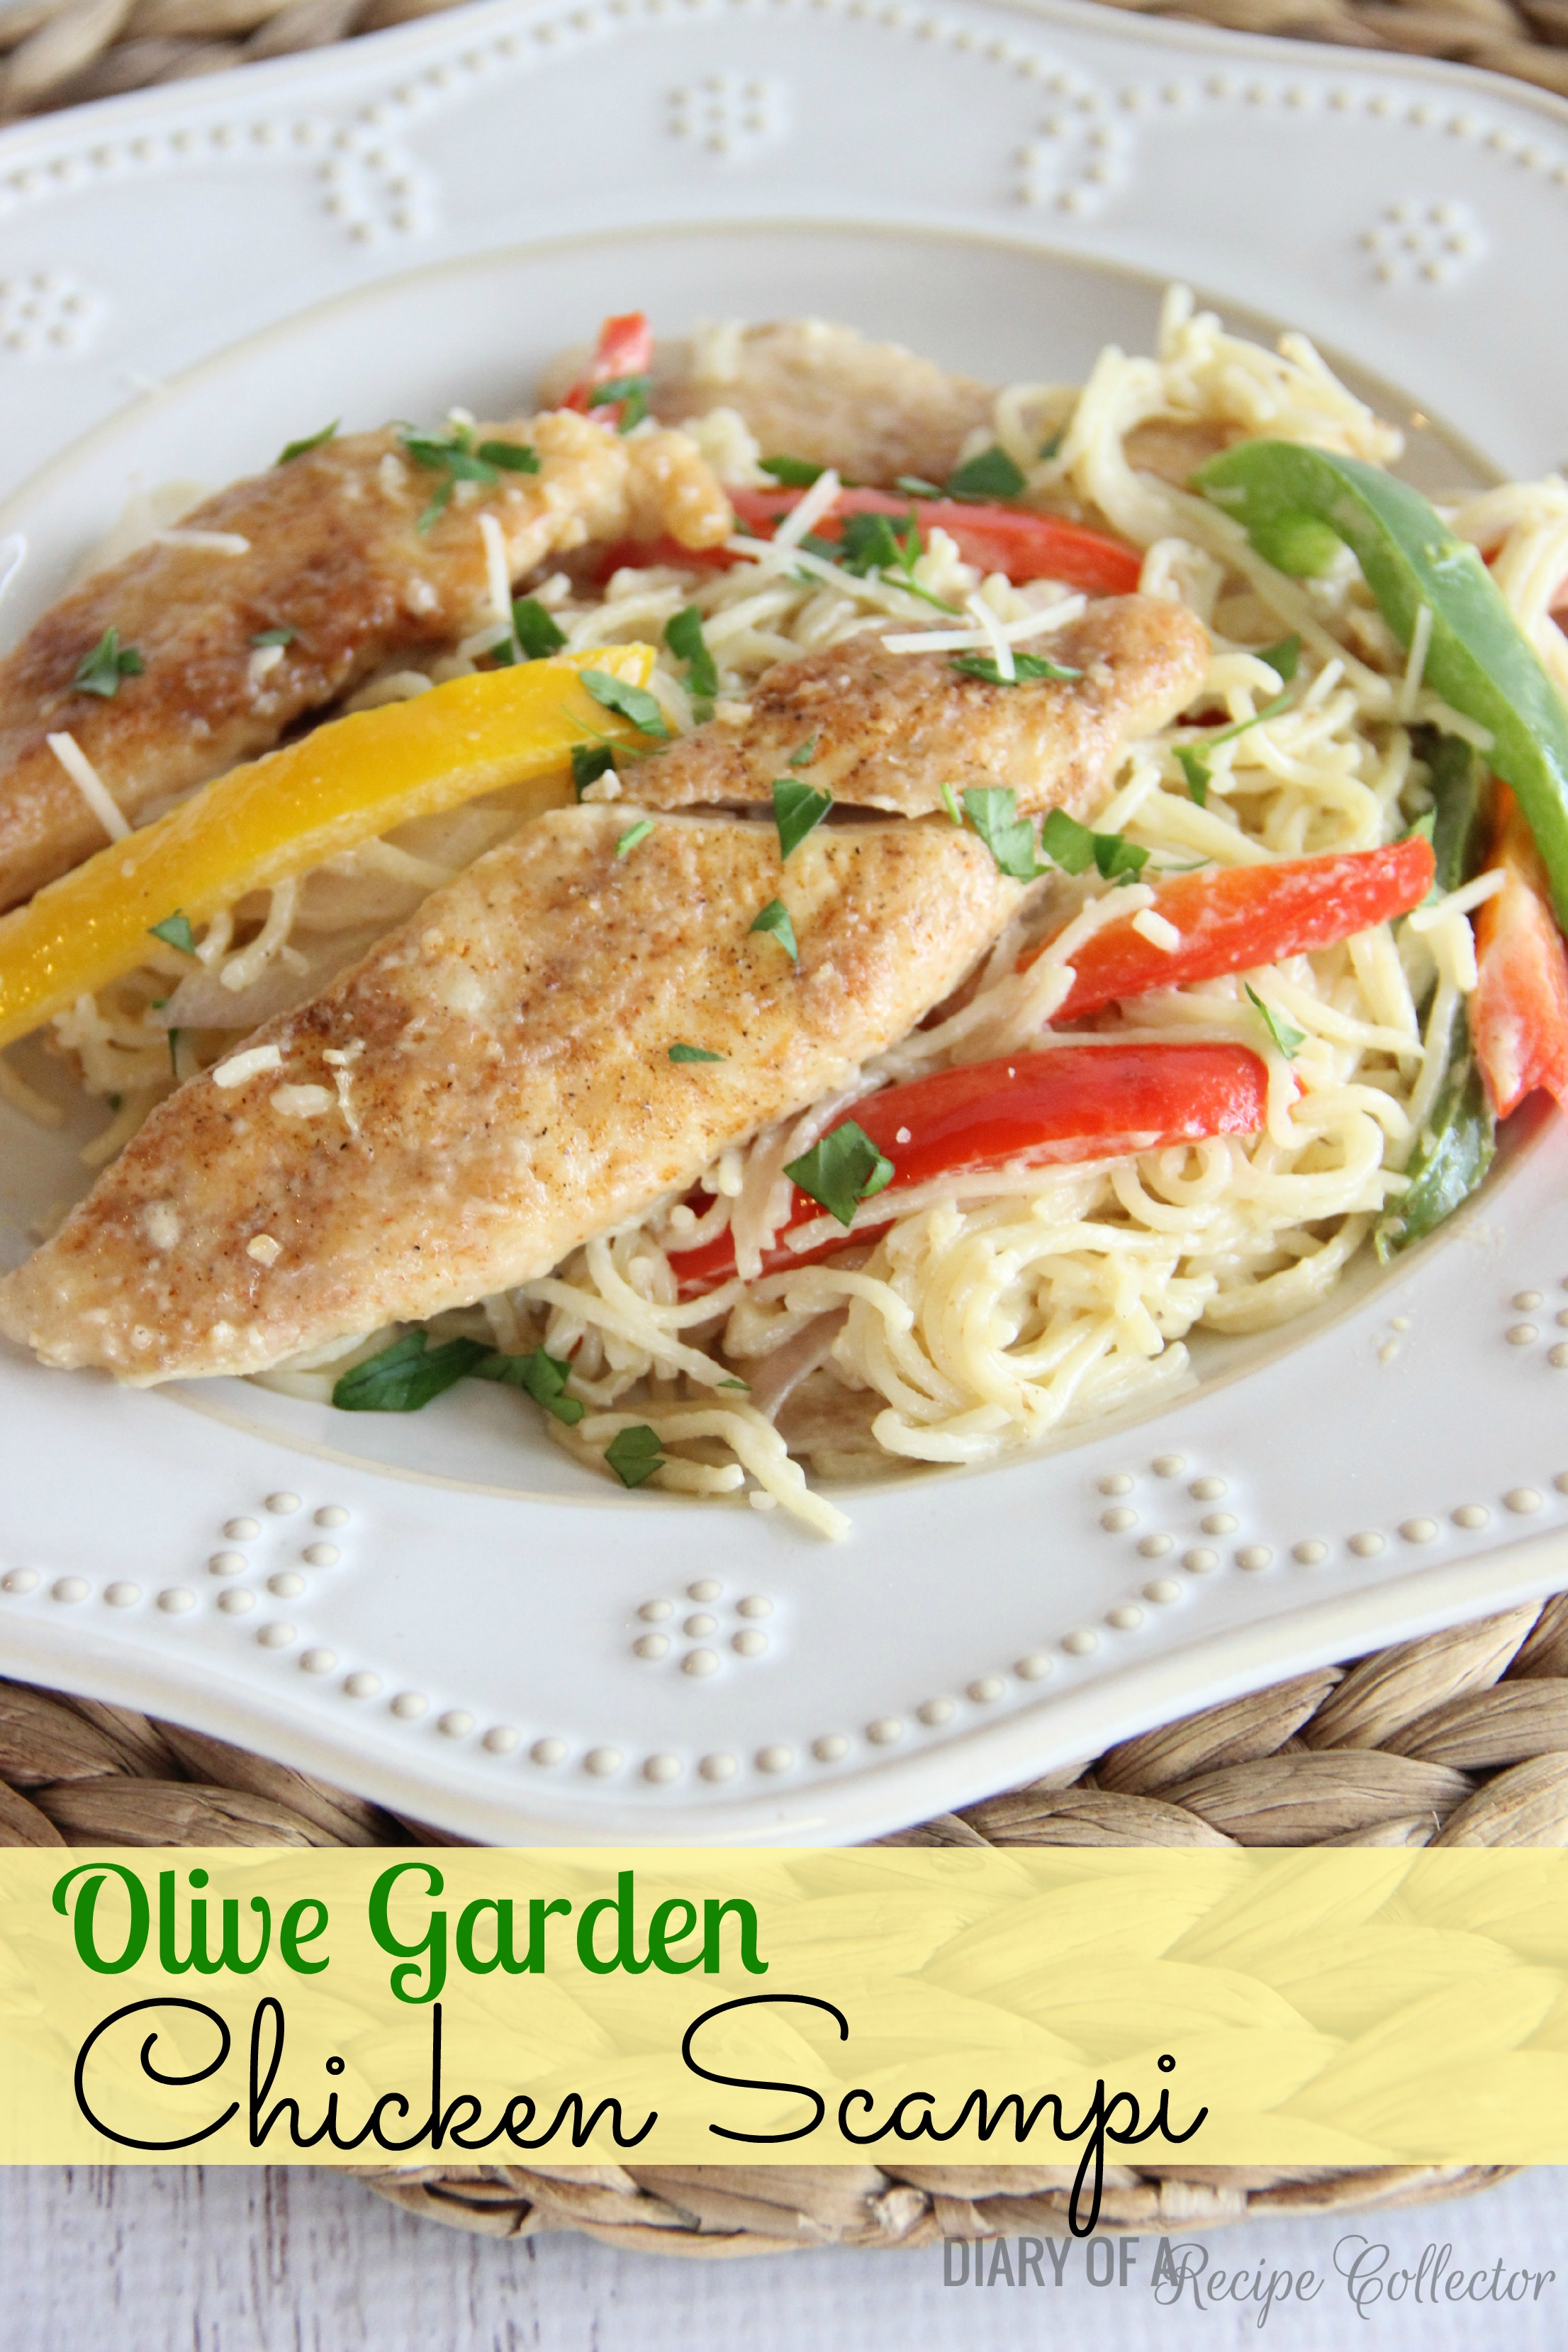 Copycat olive garden chicken scampi diary of a recipe collector copycat olive garden chicken scampi forumfinder Choice Image